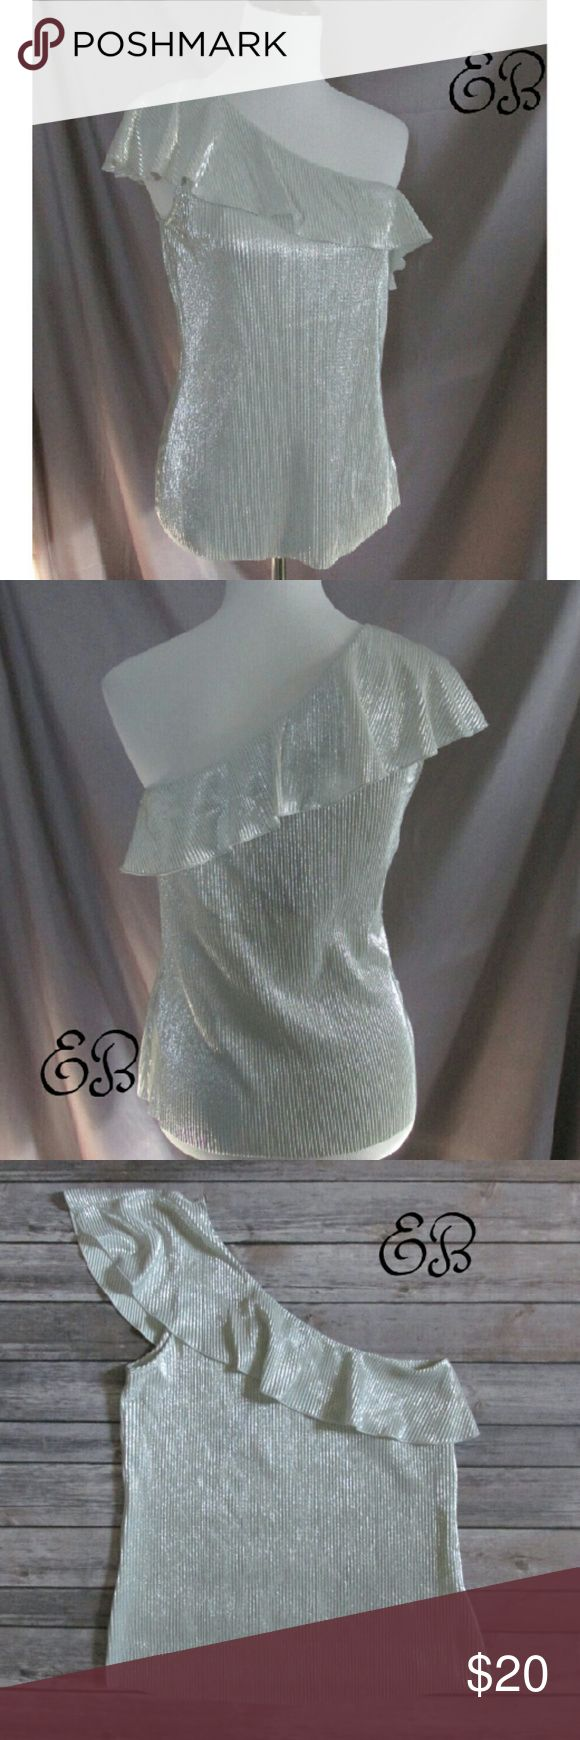 """""""Friday Night Lights"""" Tank Gorgeous silver tank in a one shoulder style. Has ruffle details at the neck. The tank itself has tiny accordion pleating. This top is not lined but it is soft to the touch. The pleats make the metallic silver spark and give movement.  This top will pick up the light so nicely at night or in low lighting.  100% Polyester   DD 11.1.17 Eclectic Betty Tops Tank Tops"""